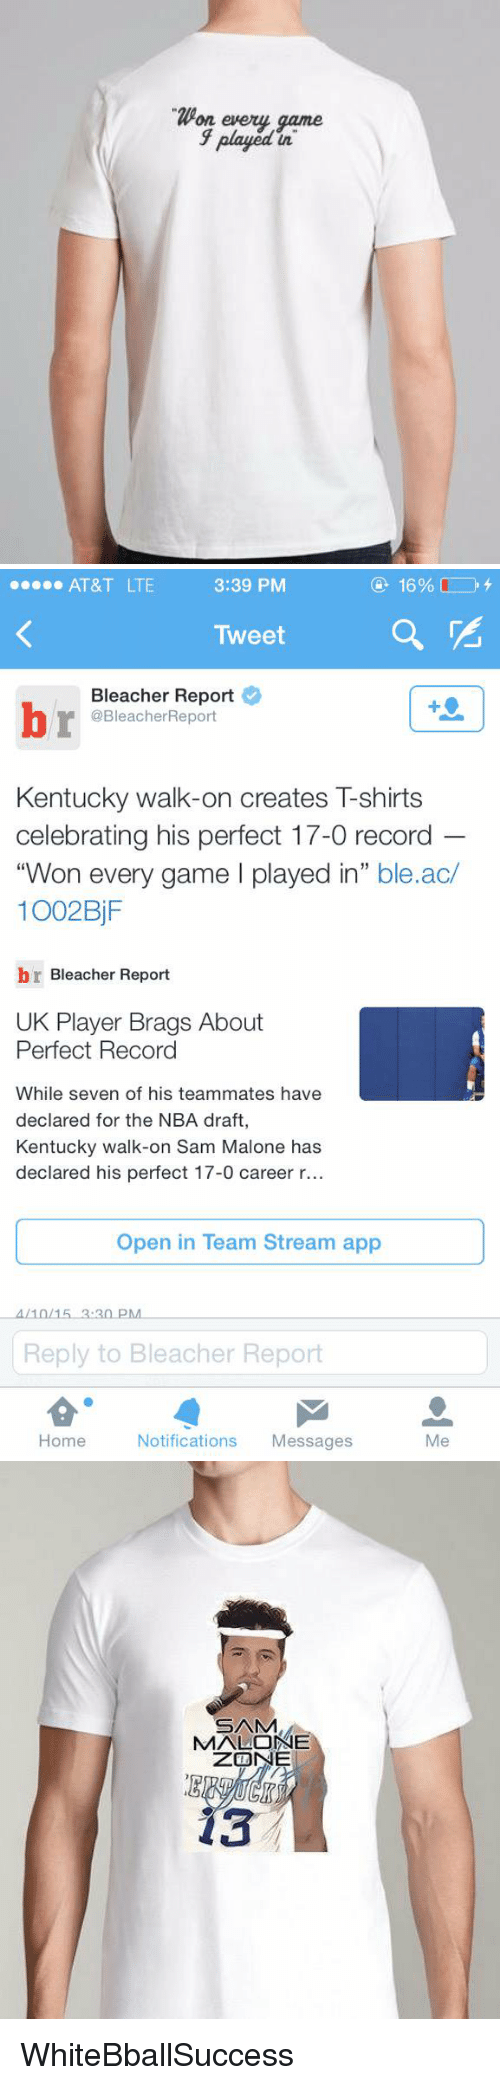 sam malone: Won every game  played  in   3:39 PM  16%  AT&T LTE  Tweet  Bleacher Report  @BleacherReport  Kentucky walk-on creates T-shirts  celebrating his perfect 17-0 record  Won every game l played in  ble.ac/  1002 BjF  br Bleacher Report  UK Player Brags About  Perfect Record  While seven of his teammates have  declared for the NBA draft  Kentucky walk-on Sam Malone has  declared his perfect 17-0 career r...  Open in Team Stream app  4/10/15 3:30 PM  Reply to Bleacher Report  Home  Notifications  Messages  Me   20  UKN WhiteBballSuccess